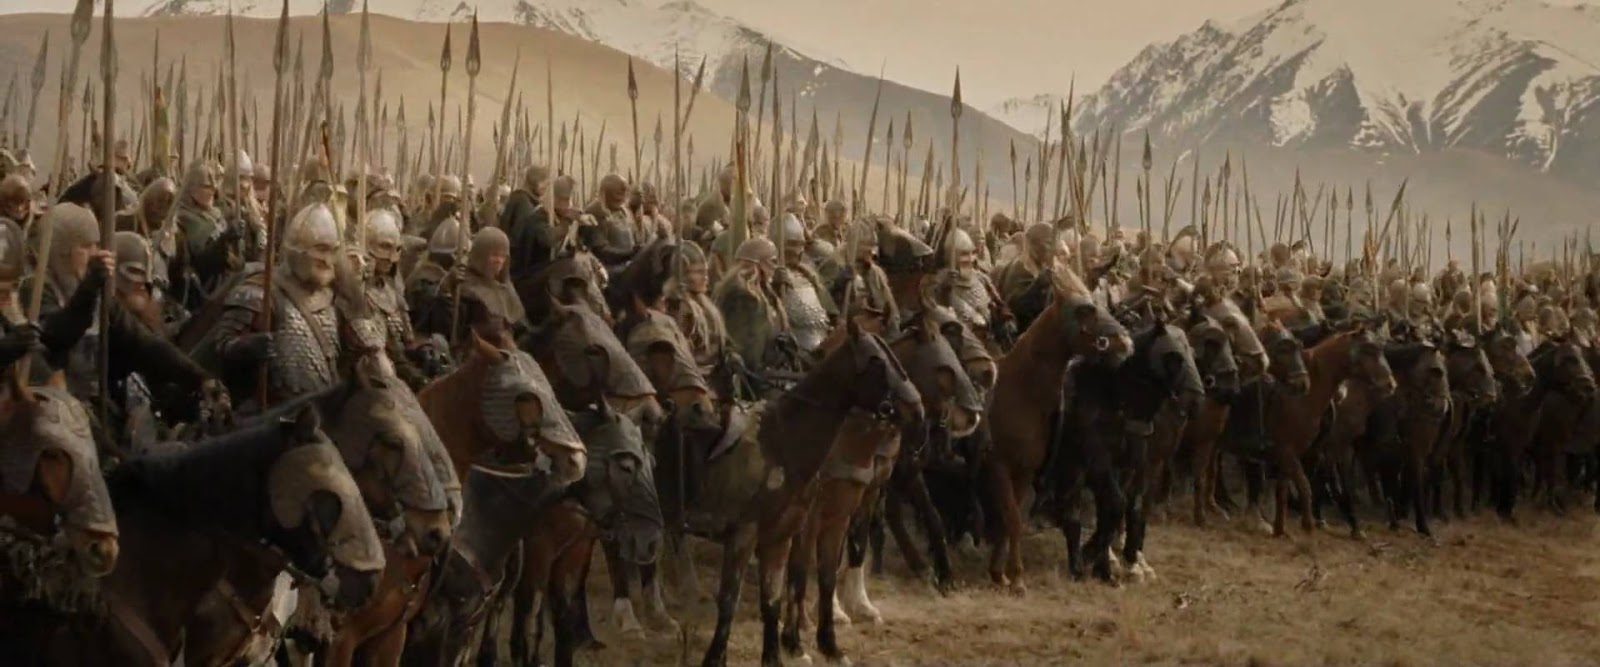 The Lord of the Rings: The Fellowship of the Ring | The